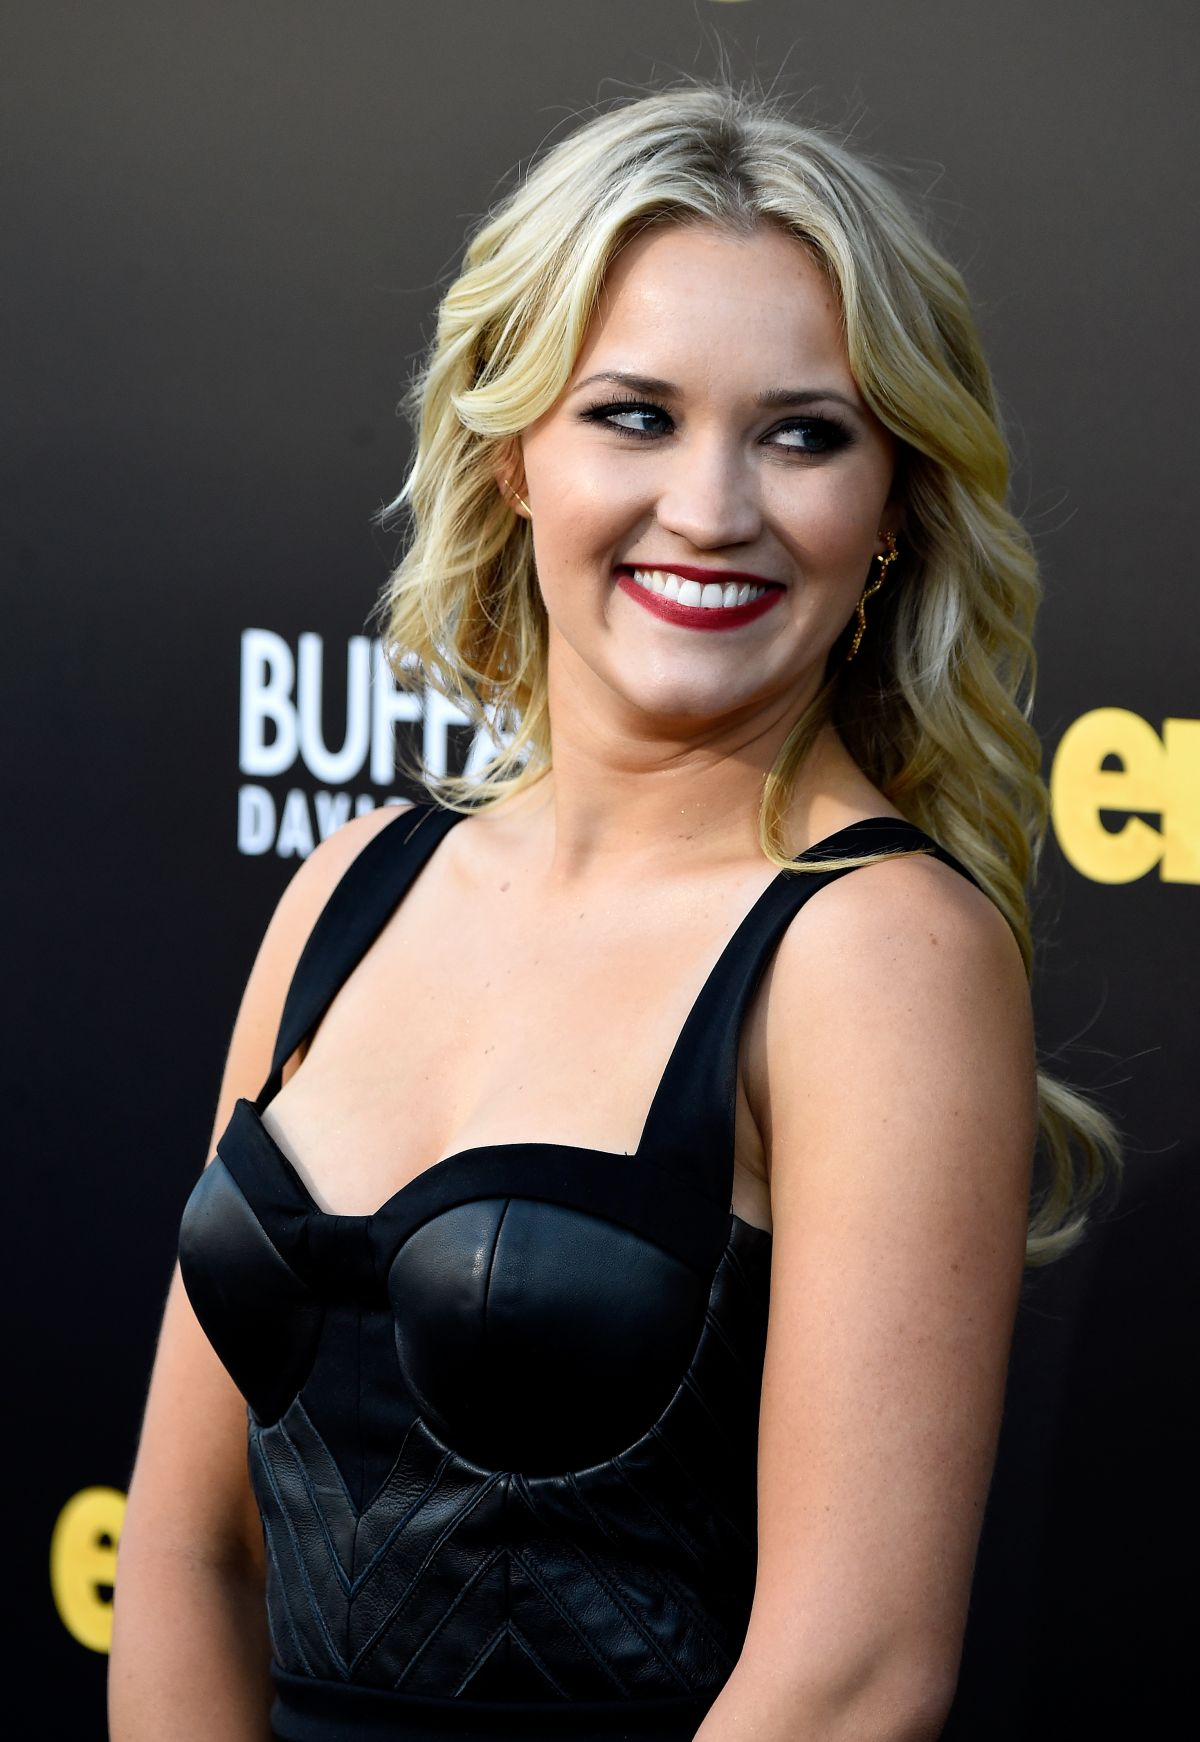 Emily Osment At Entourage Premiere Celebzz Celebzz